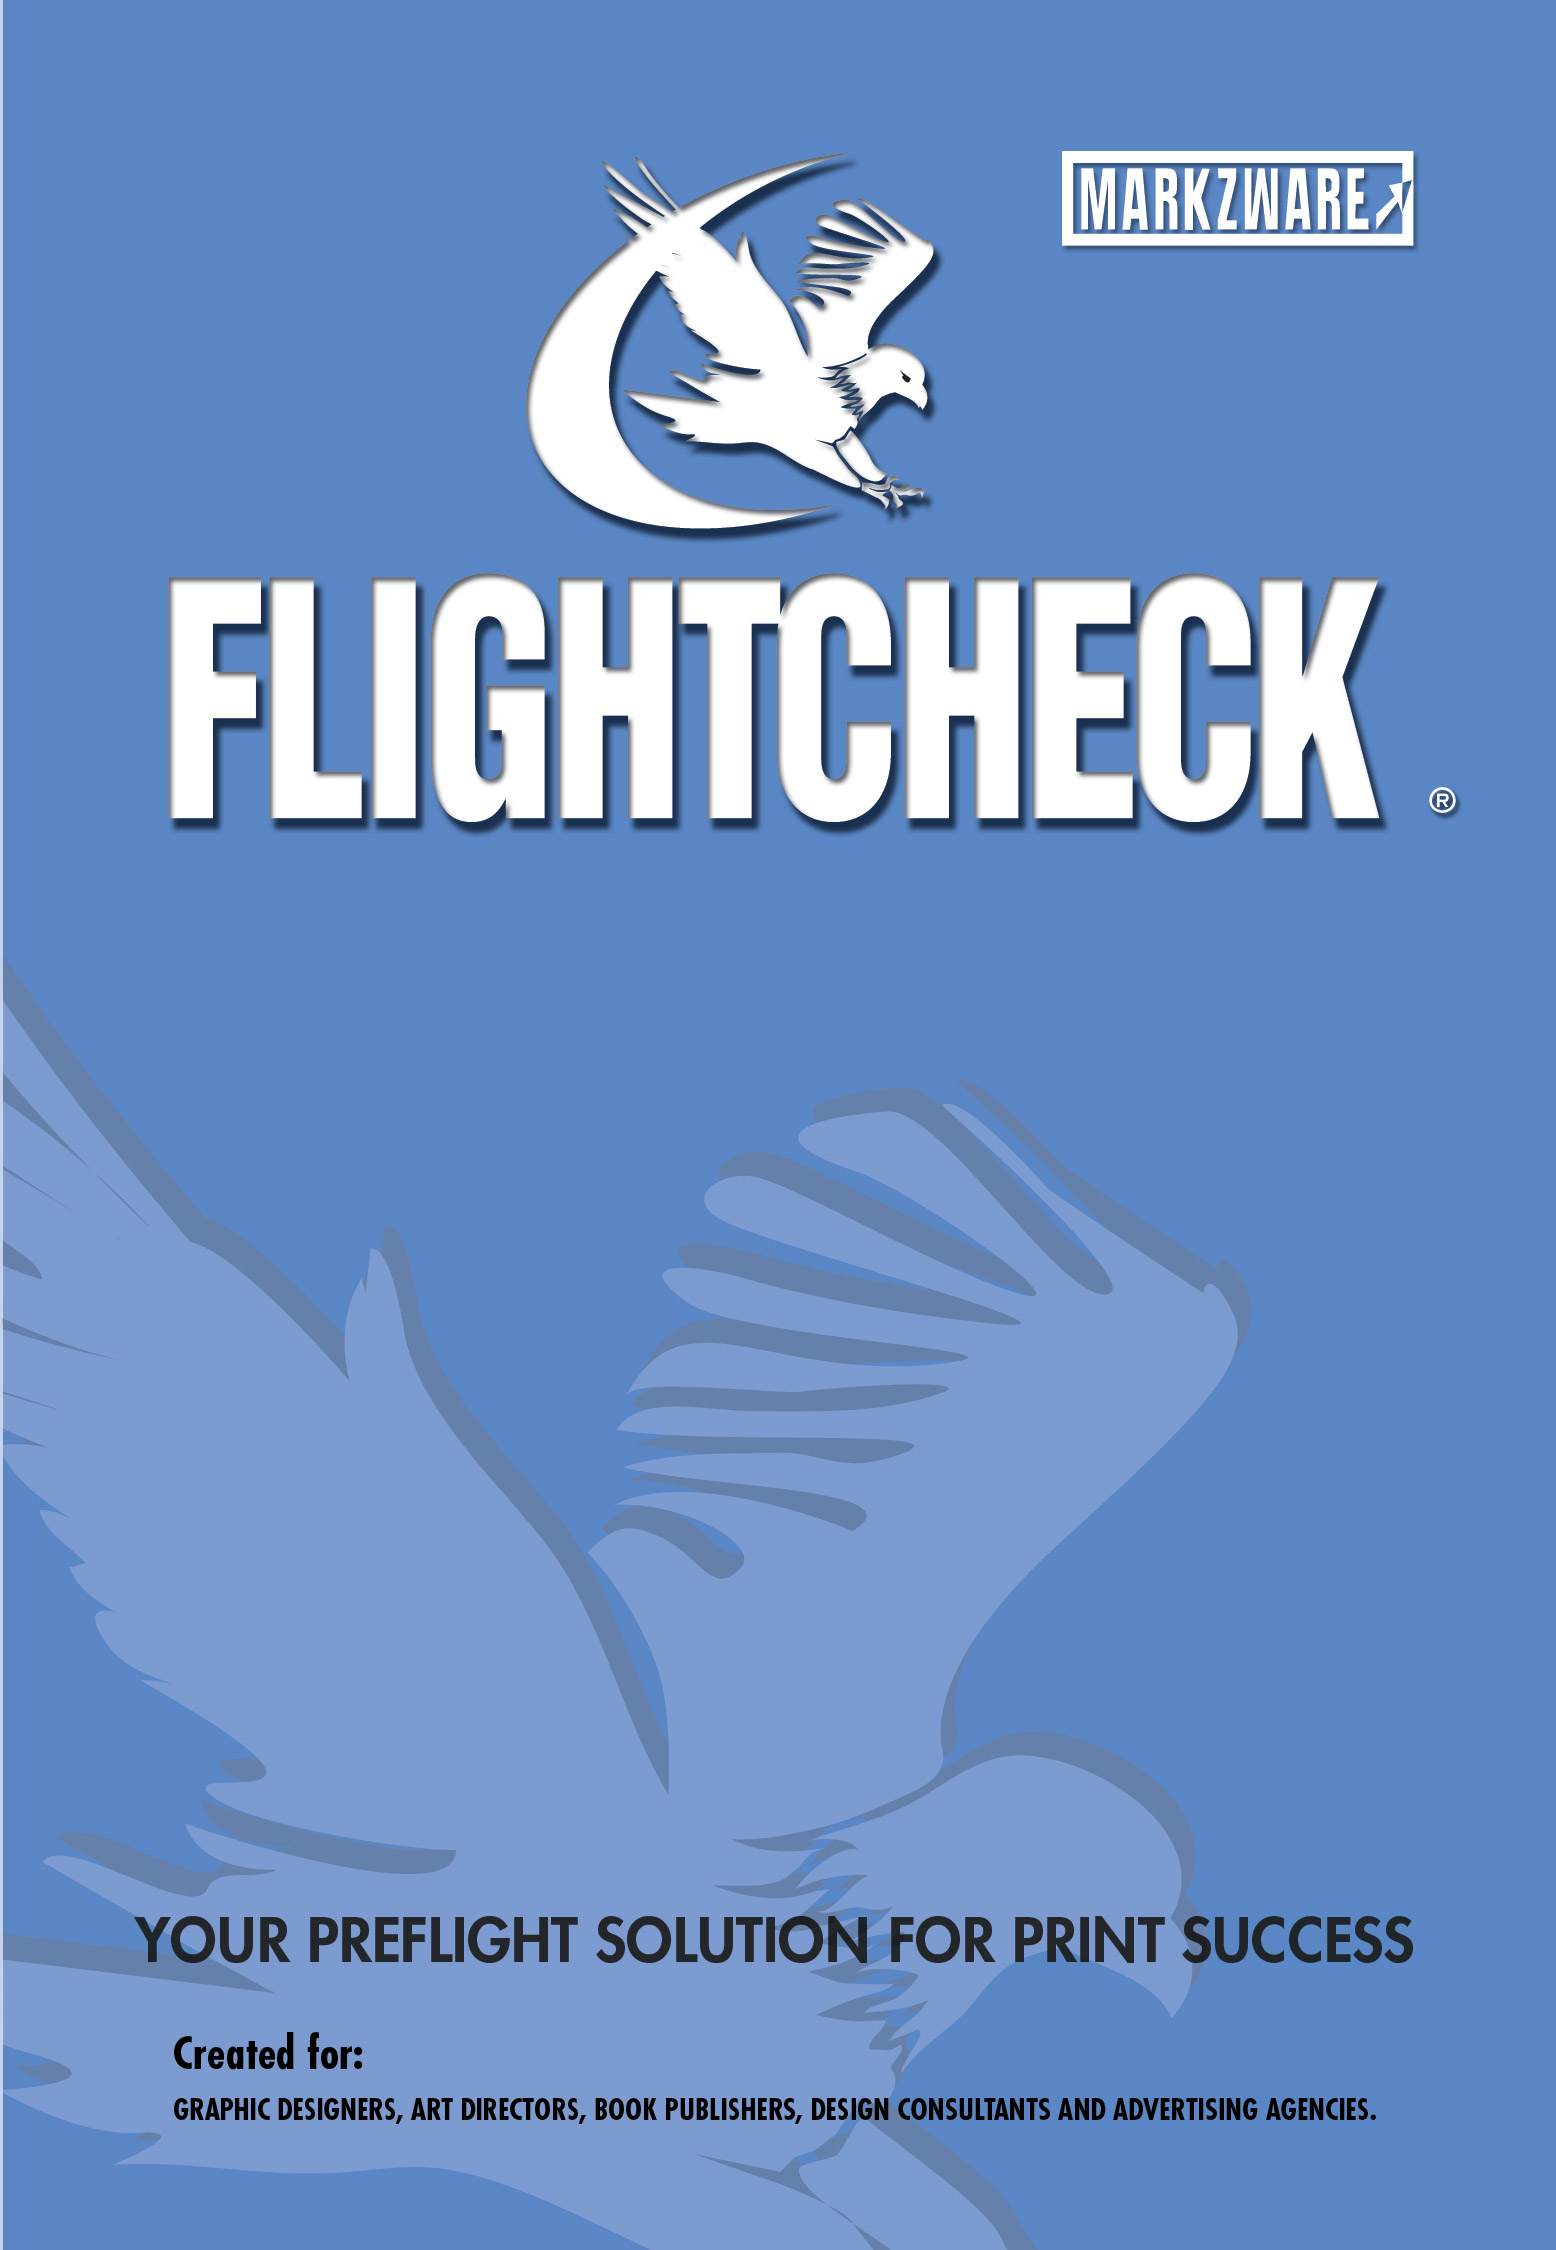 Markzware FlightCheck Box Shot Your Preflight Solution for Print Success